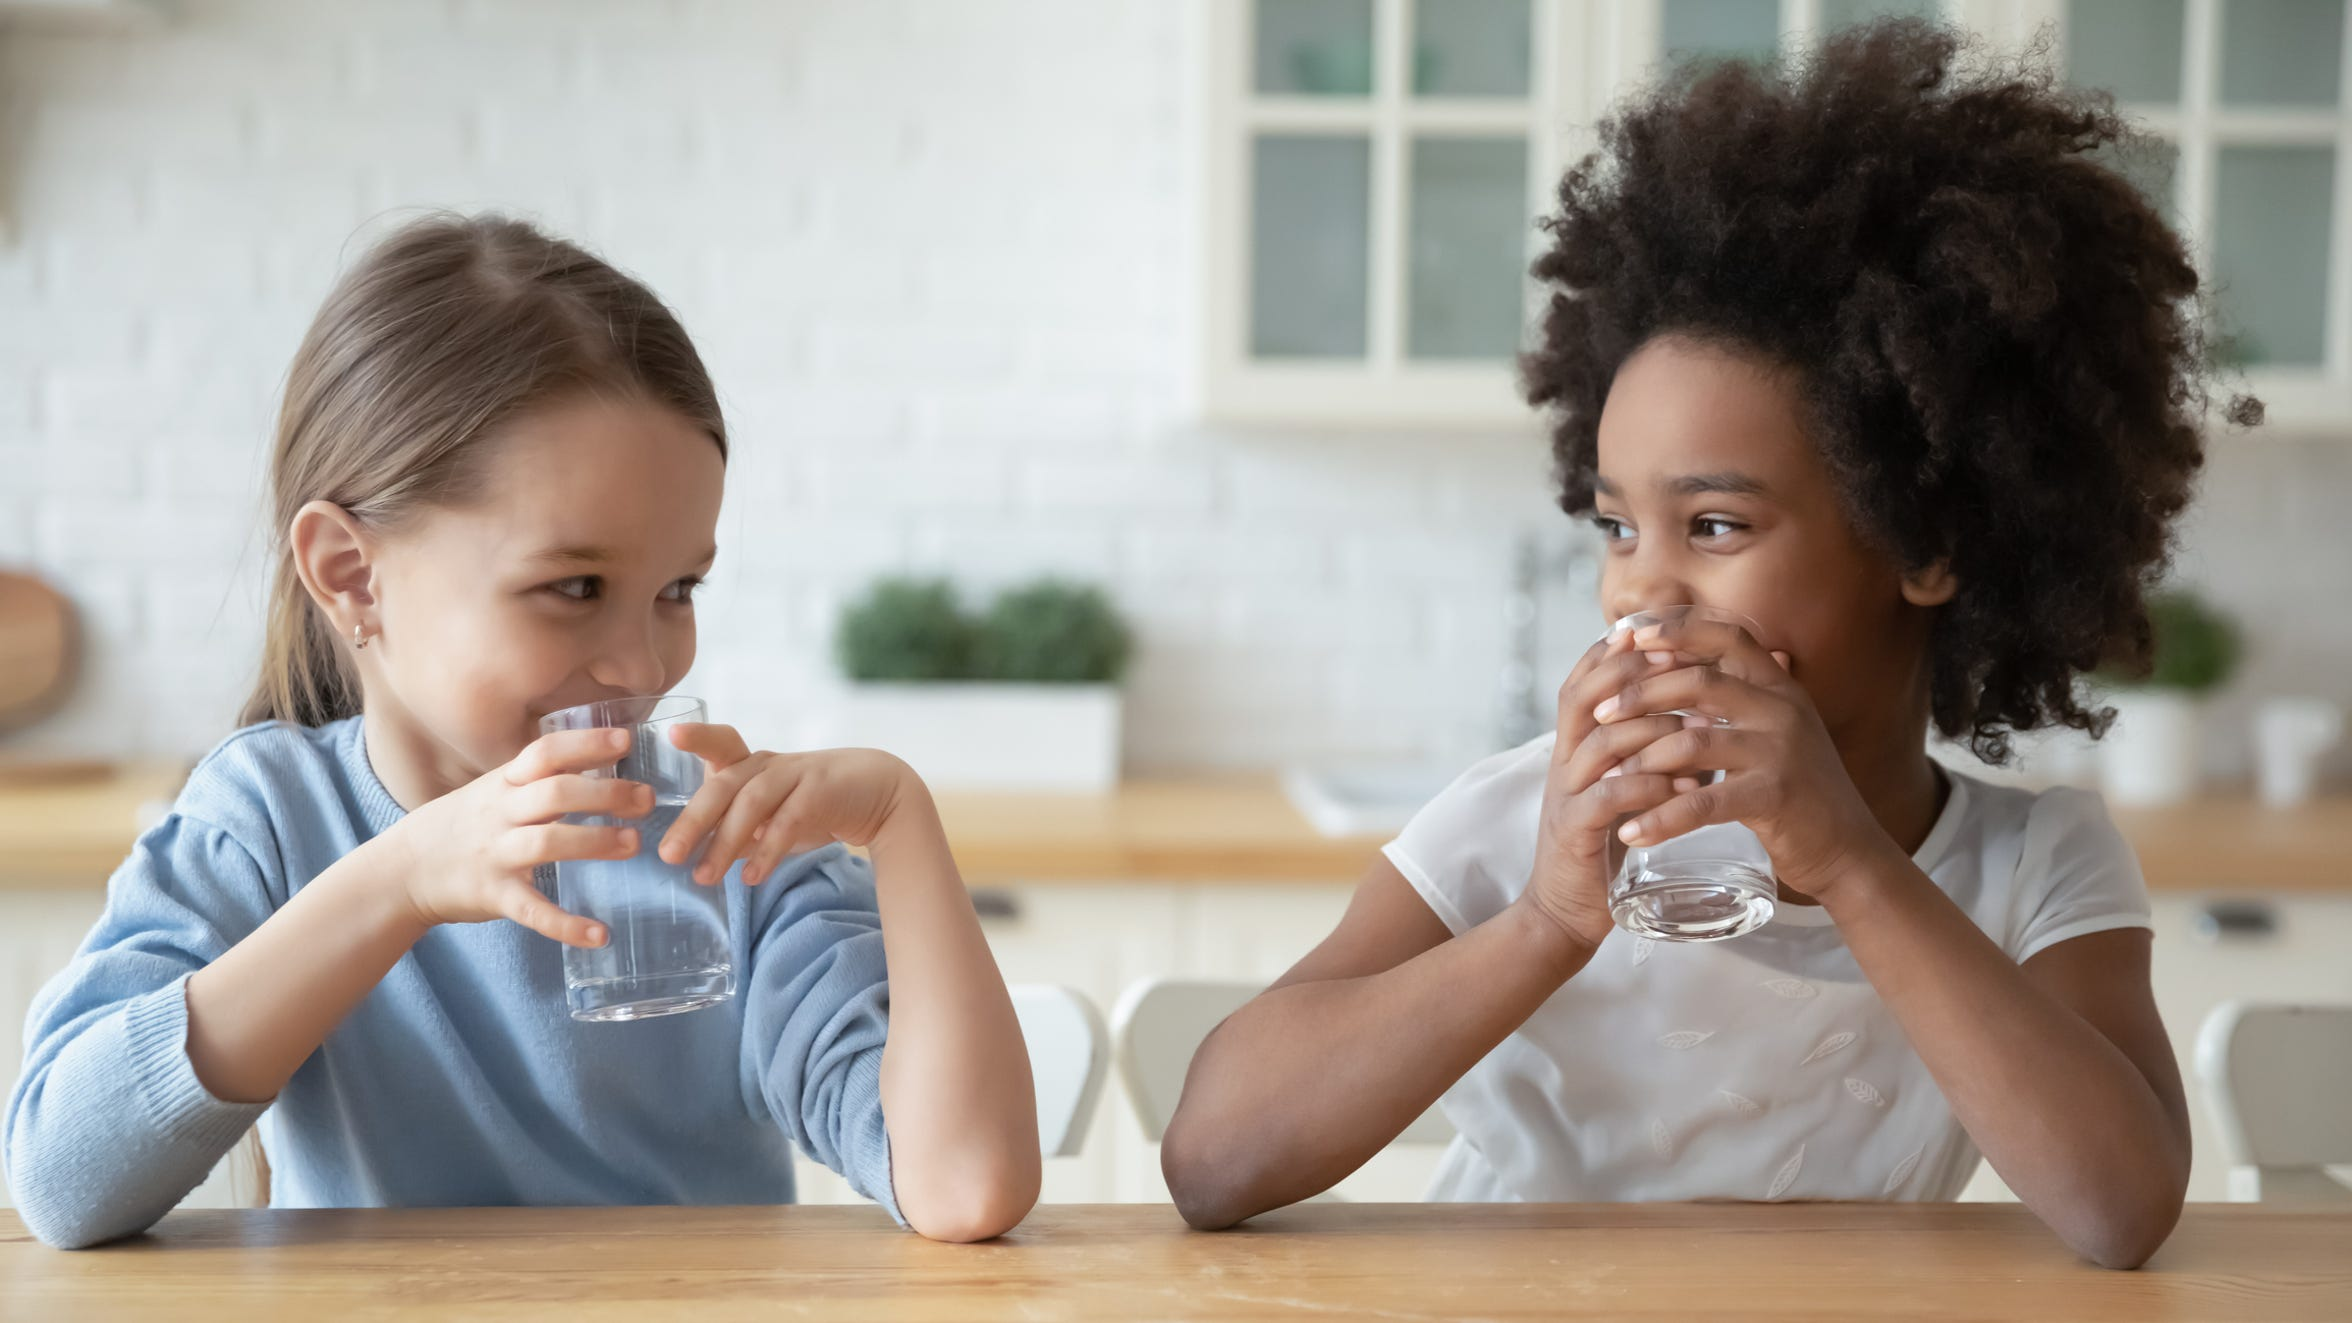 Increasing a child's daily water intake can boost overall health.